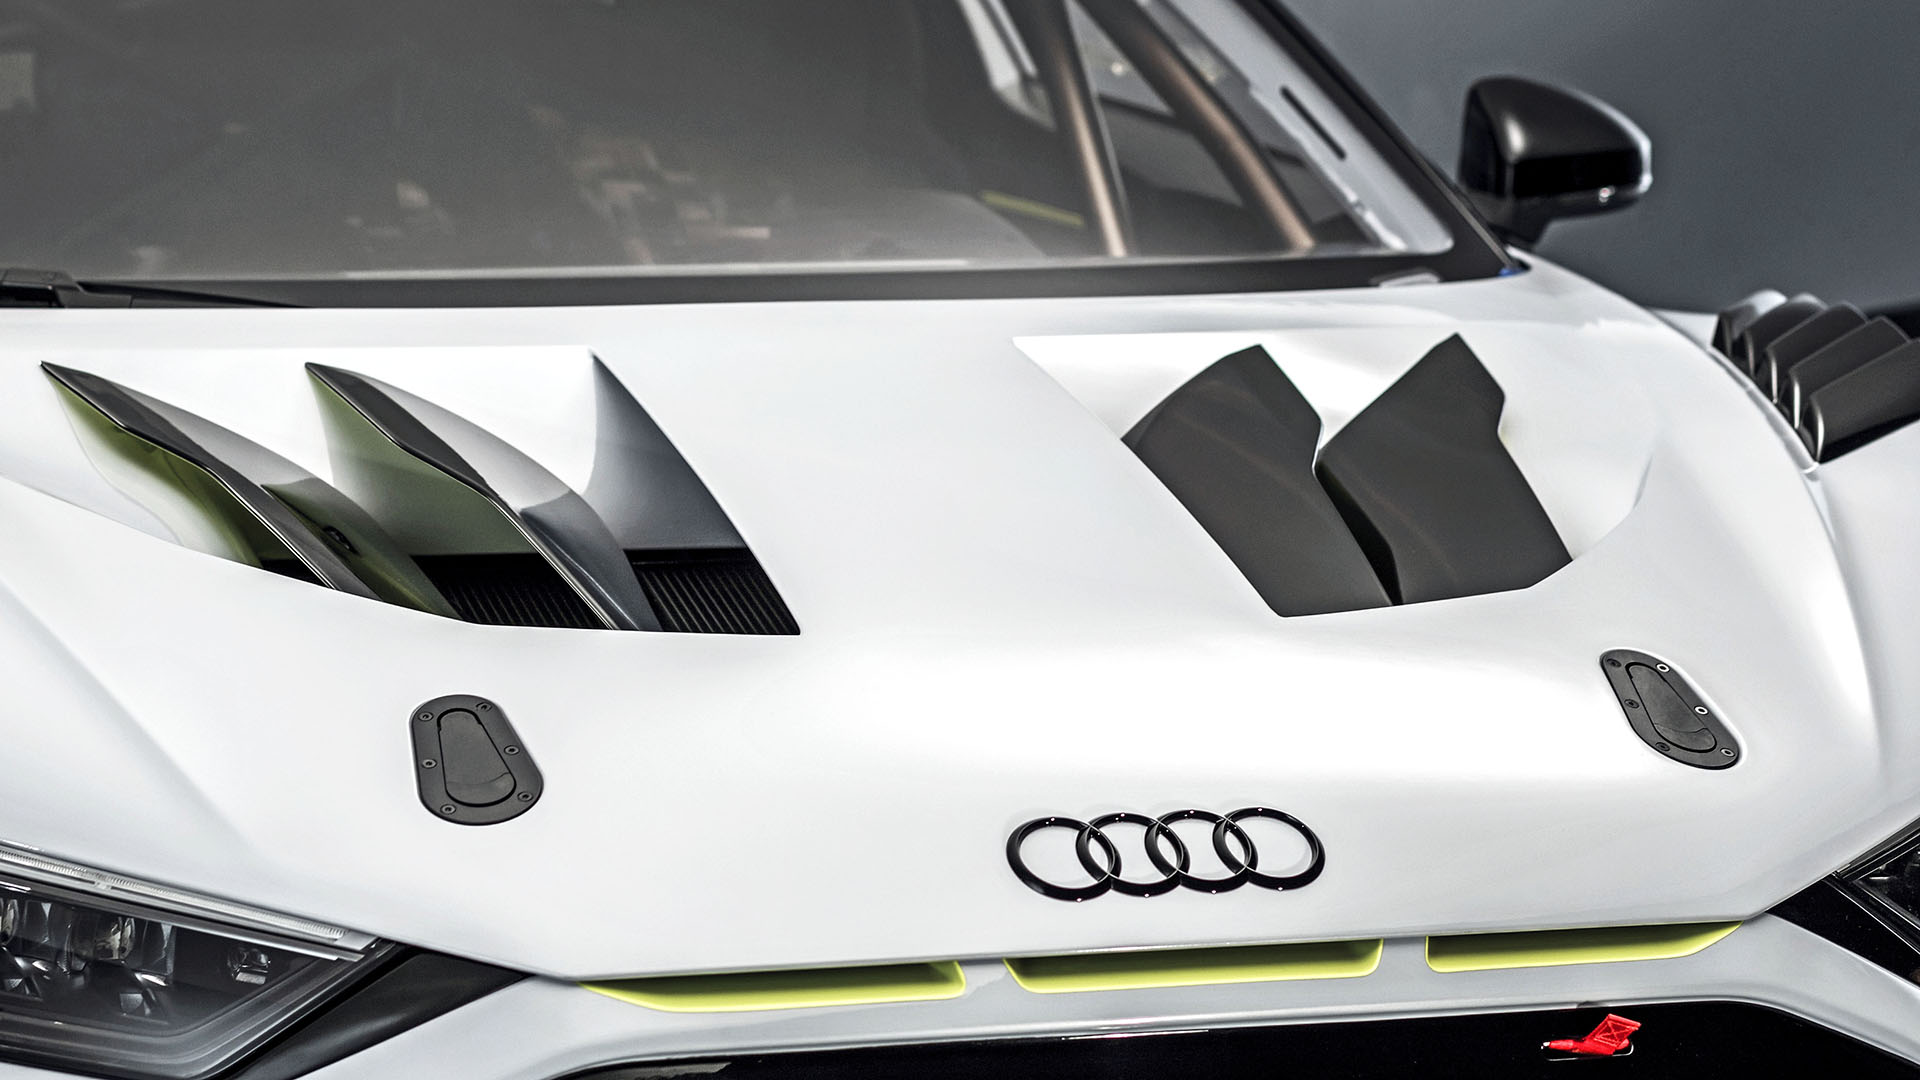 The front of the Audi R8 LMS GT2